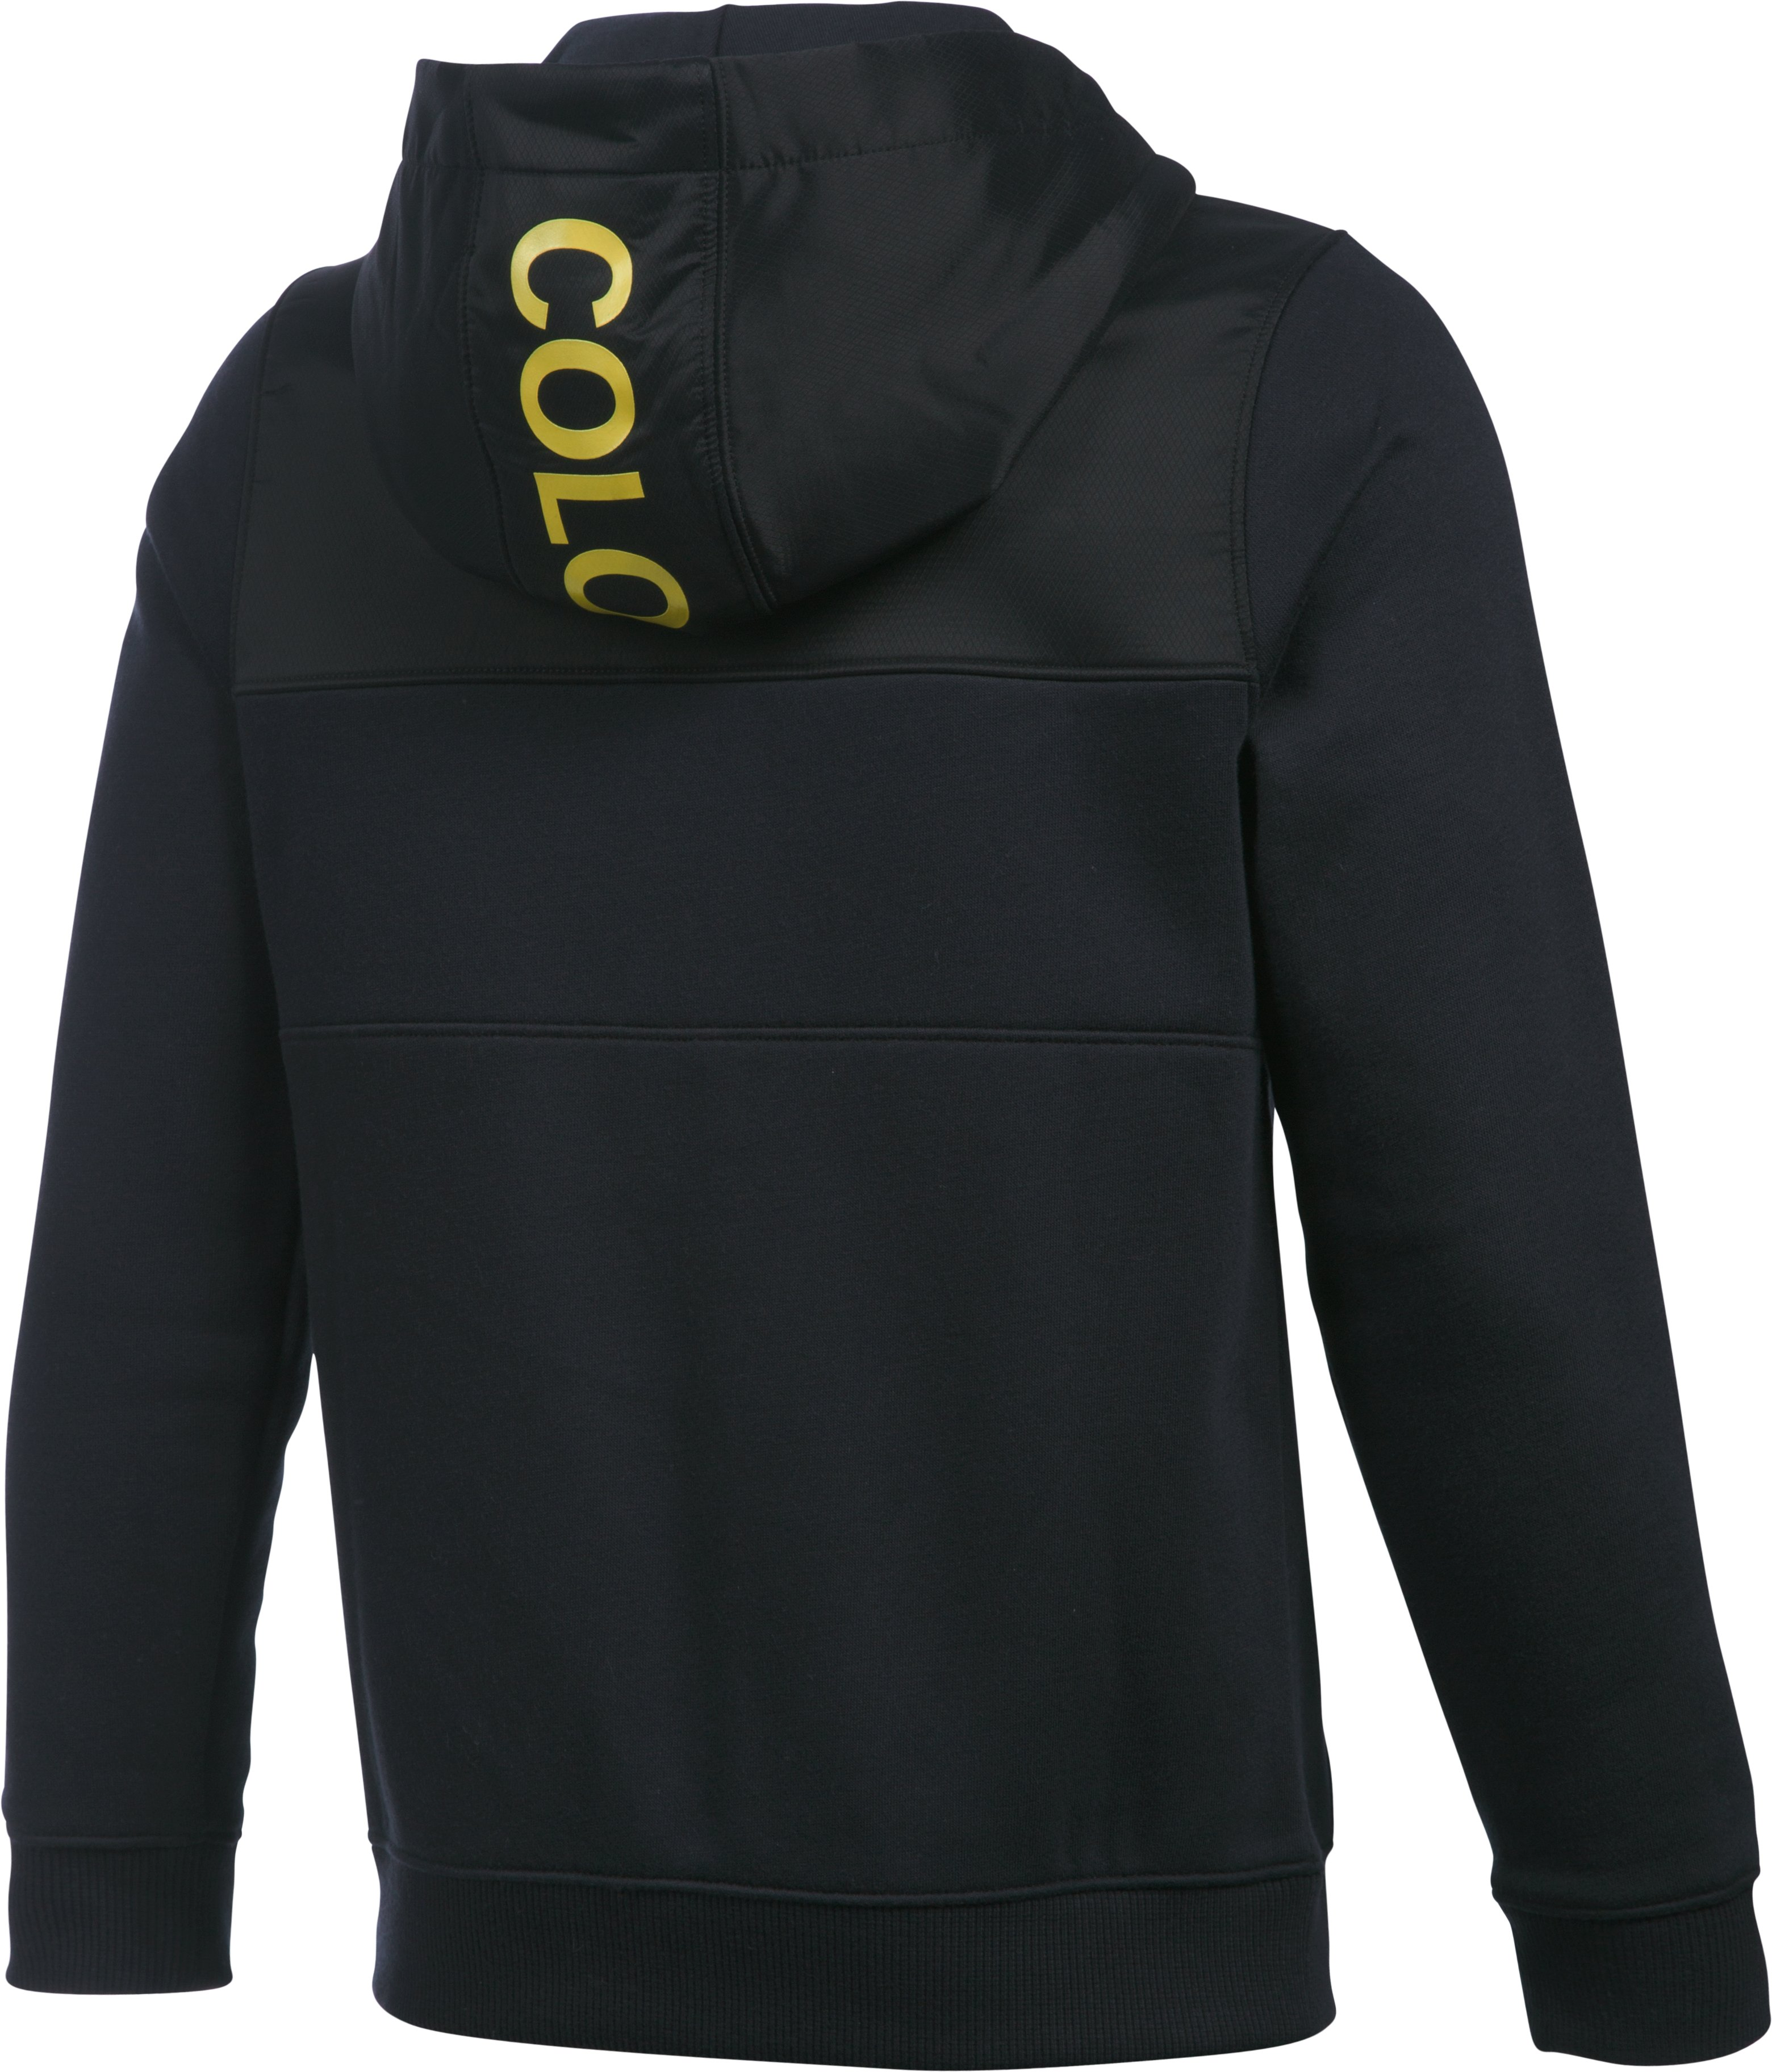 Boys' Colo-Colo Charged Cotton® Hoodie, Black ,